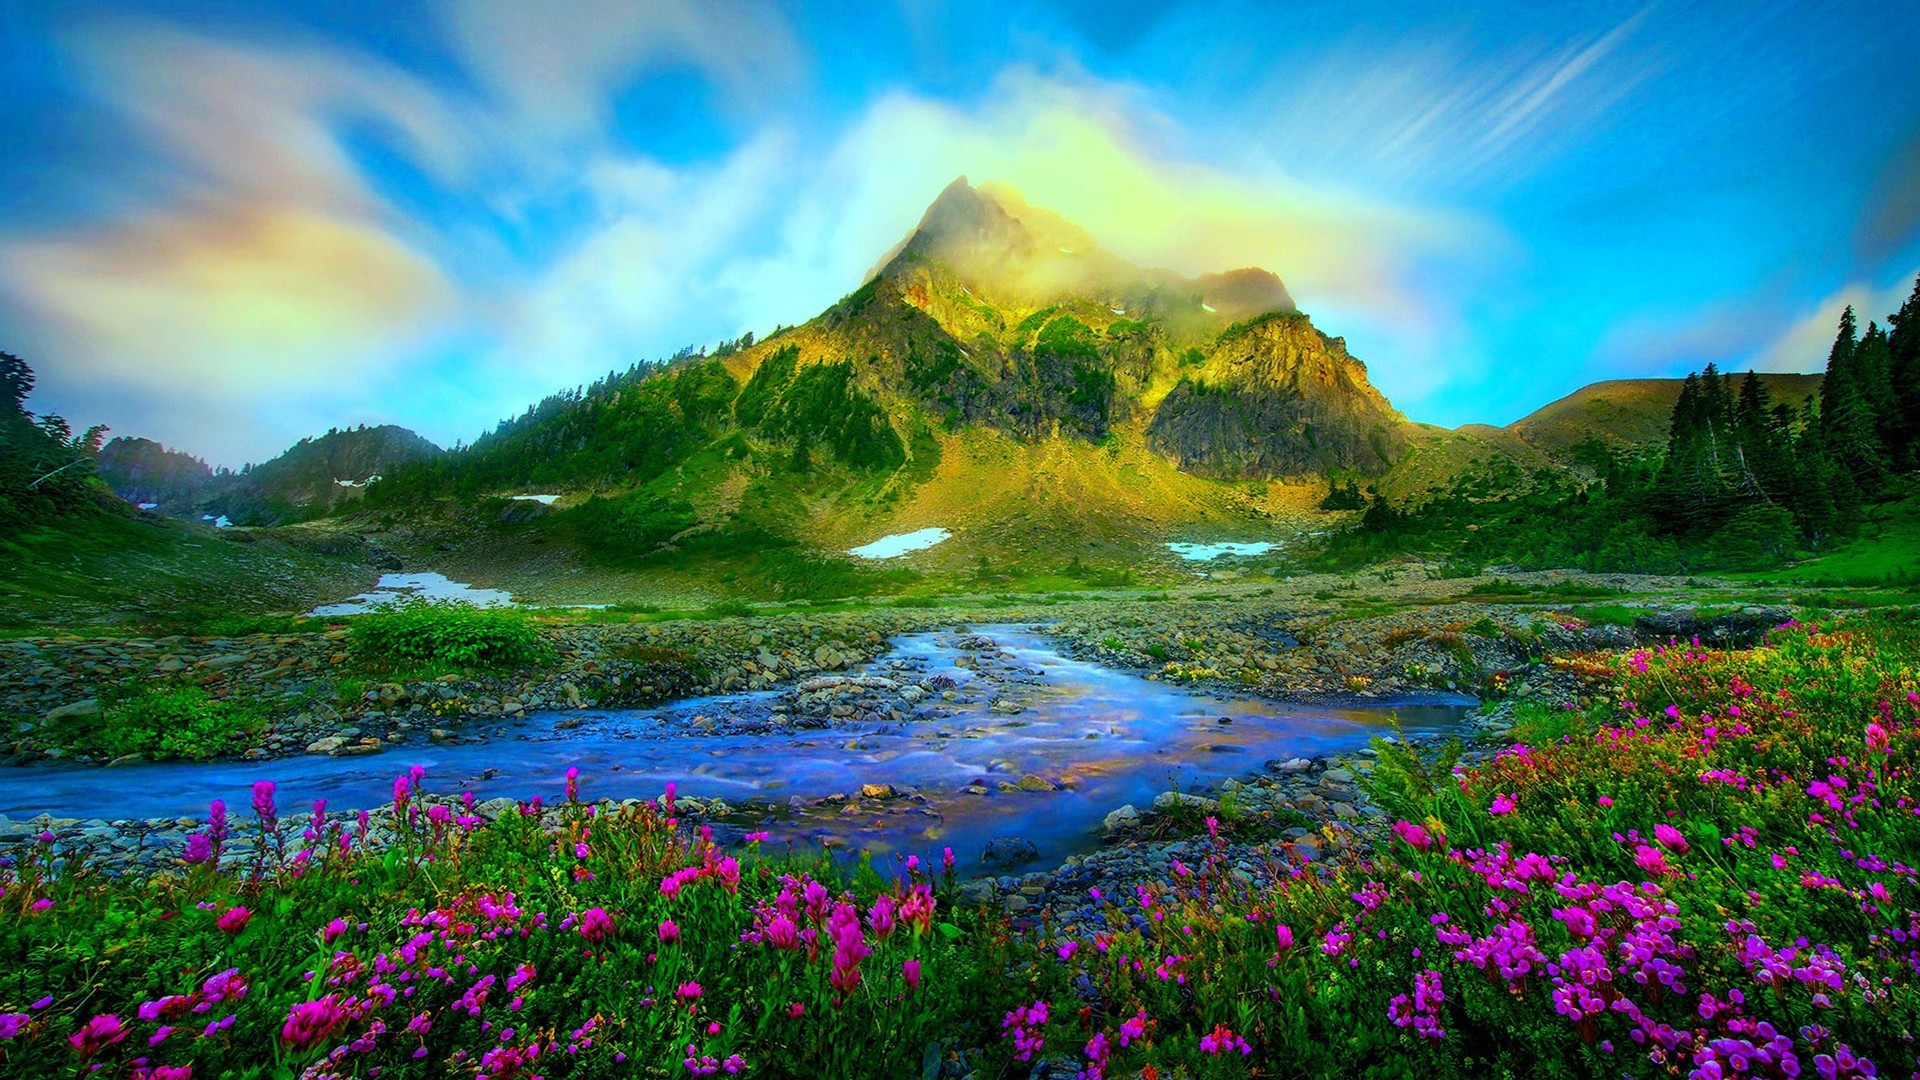 Nature Landscape Wallpapers Hd Widescreen Wallpaper Nature ...